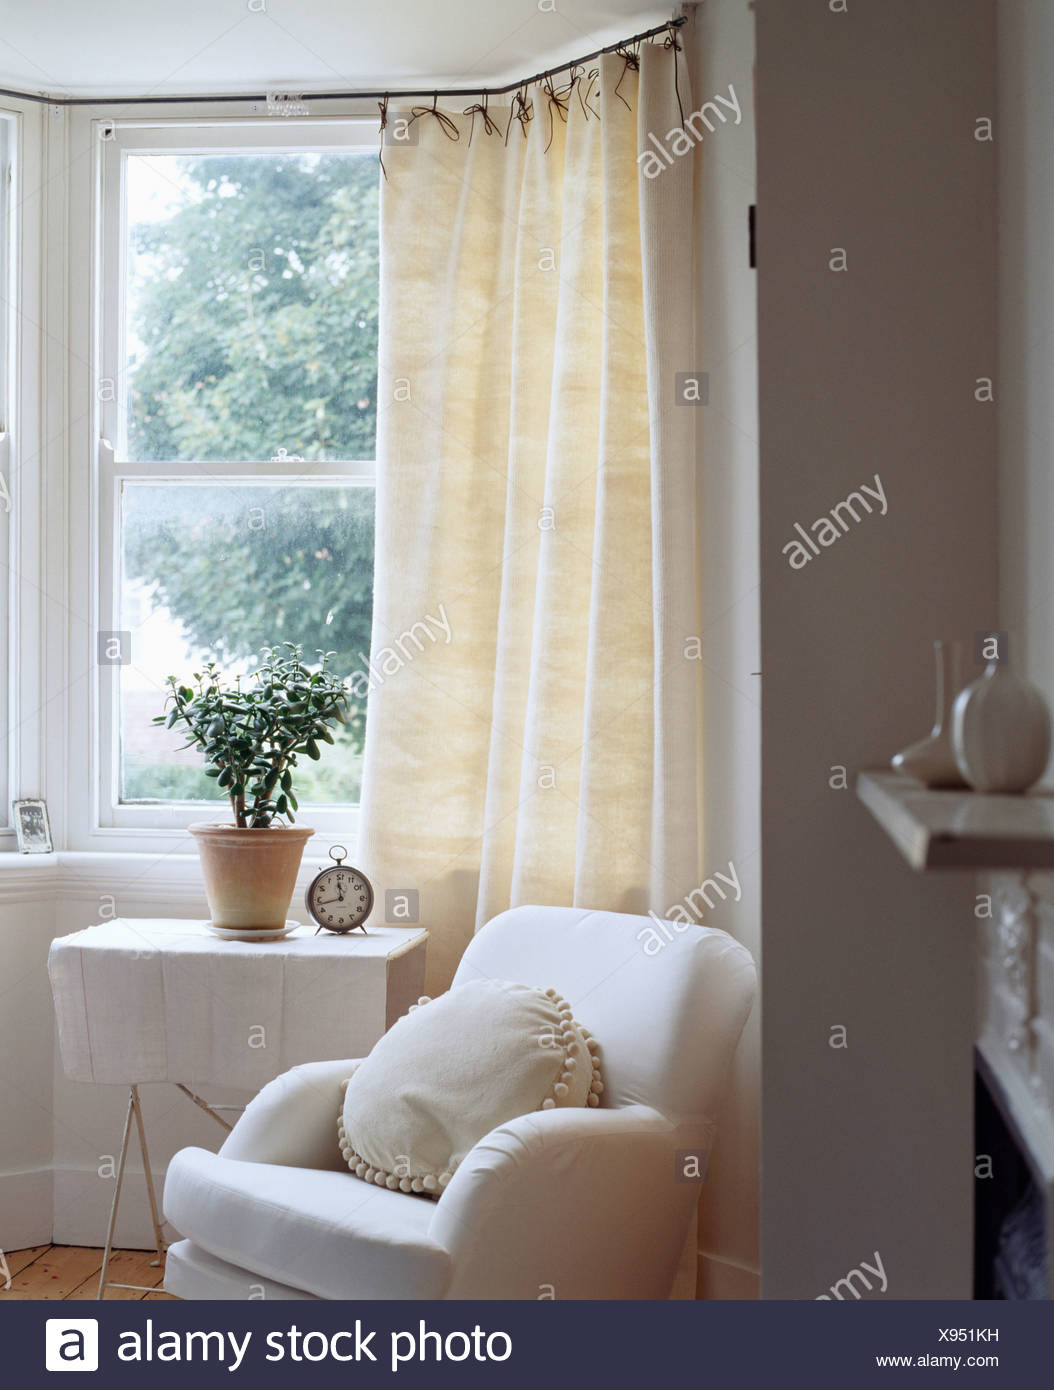 Bay Window Curtains Stock Photos & Bay Window Curtains Stock Images ...